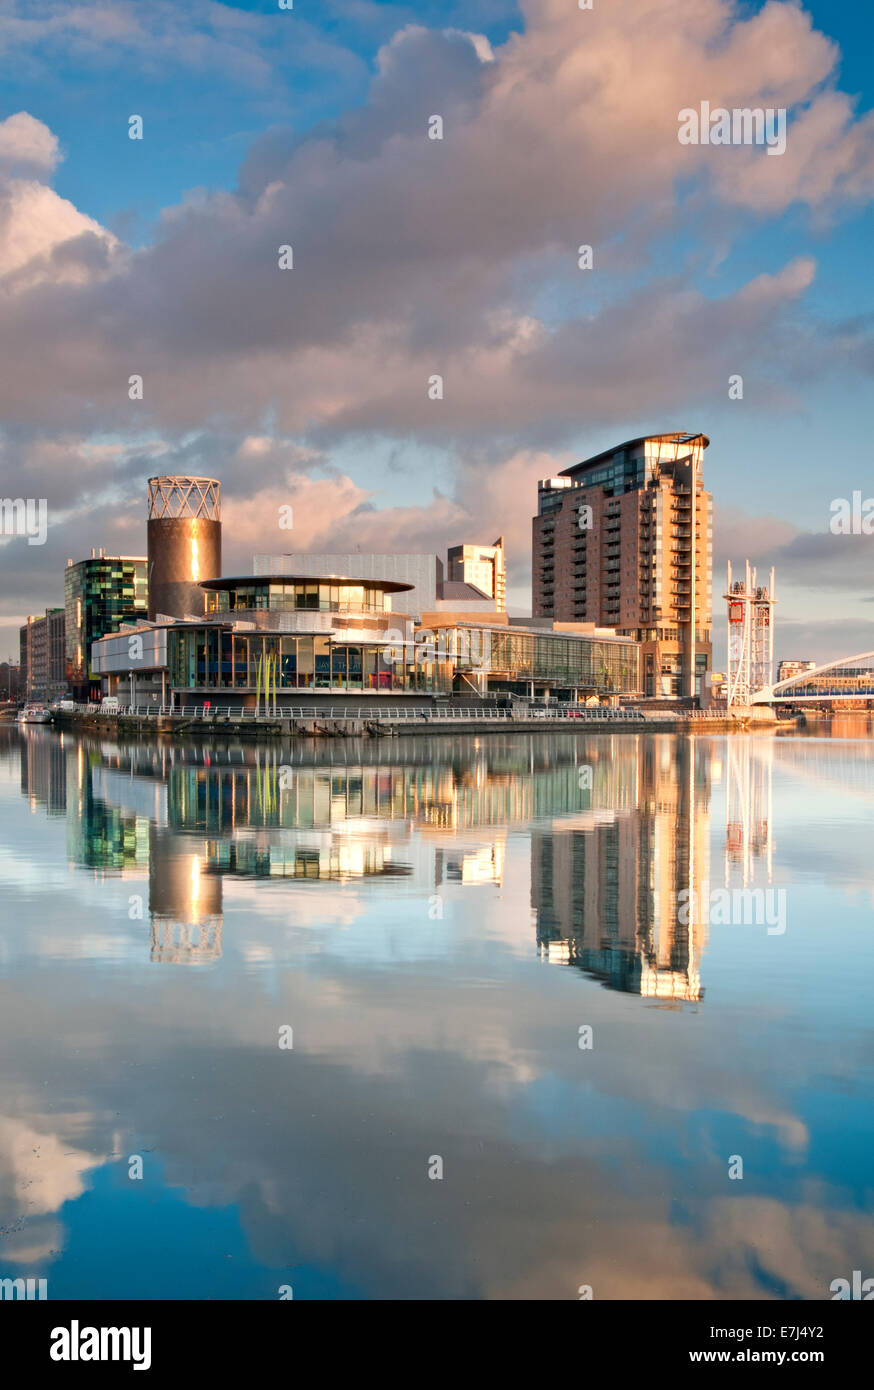 The Lowry Centre & Theatre, Salford Quays, Greater Manchester, England, UK - Stock Image